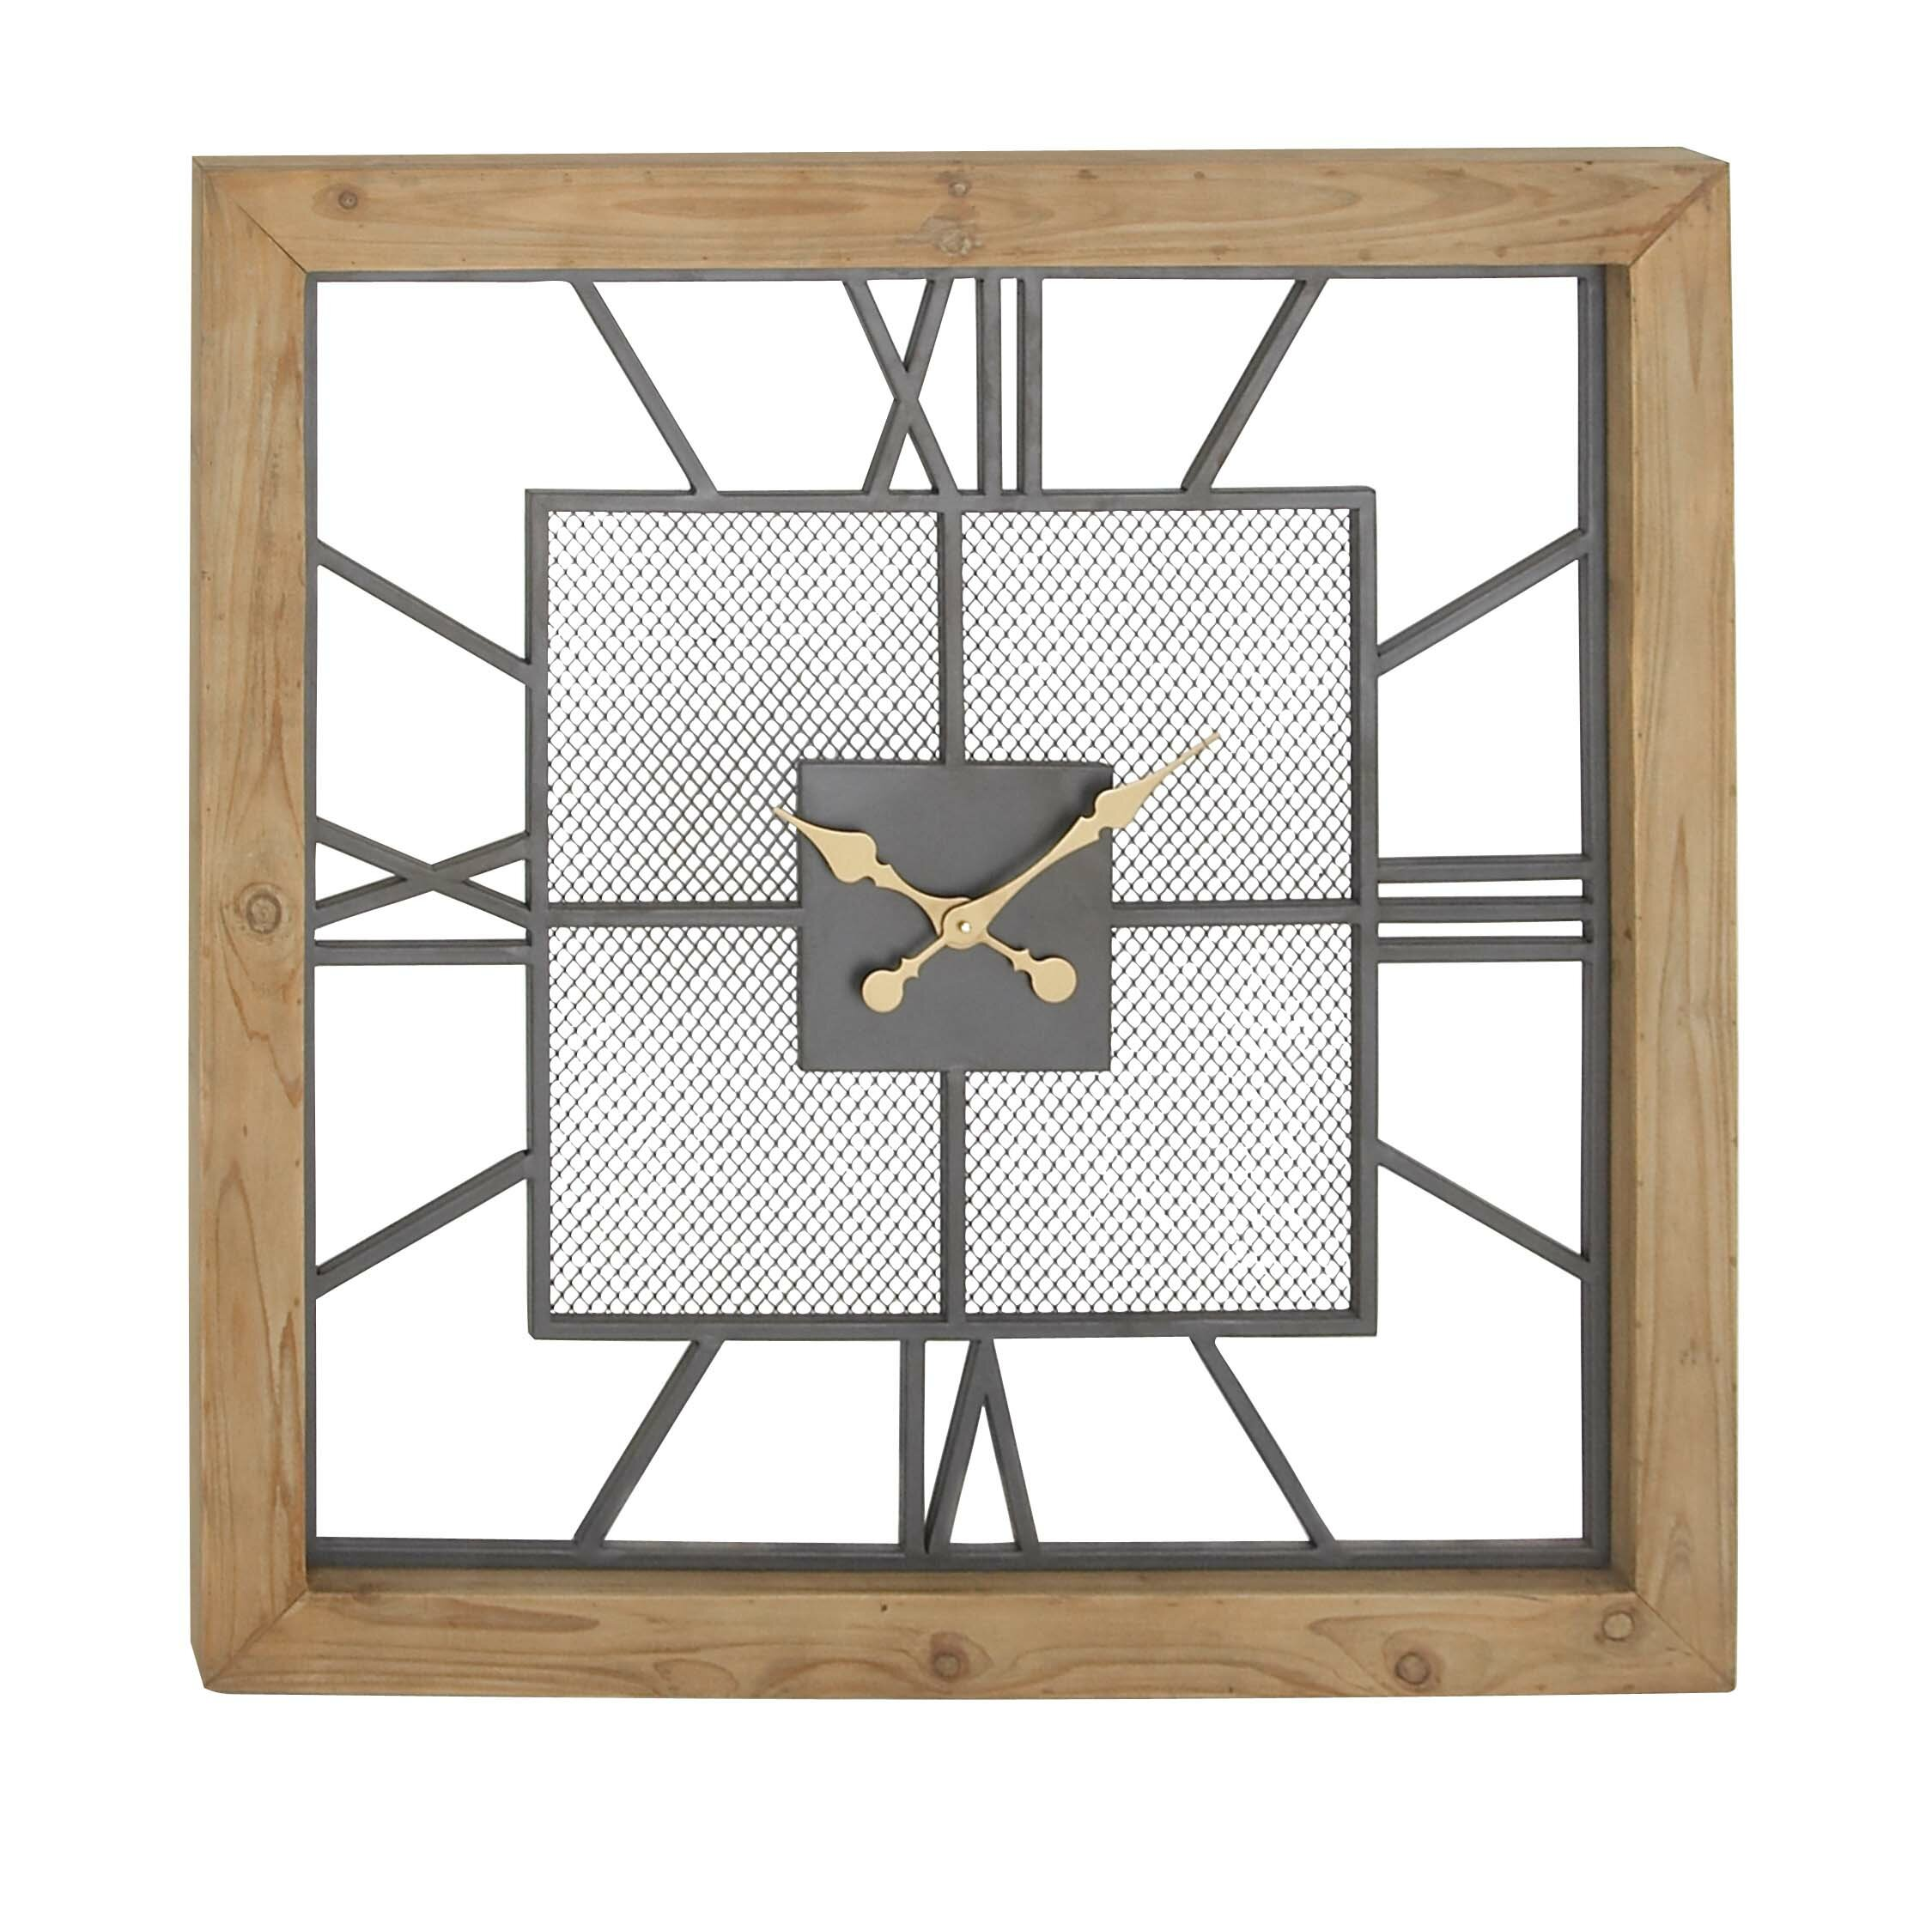 Millersburg Rustic Square Wall Clock with Roman Numerals AllModern